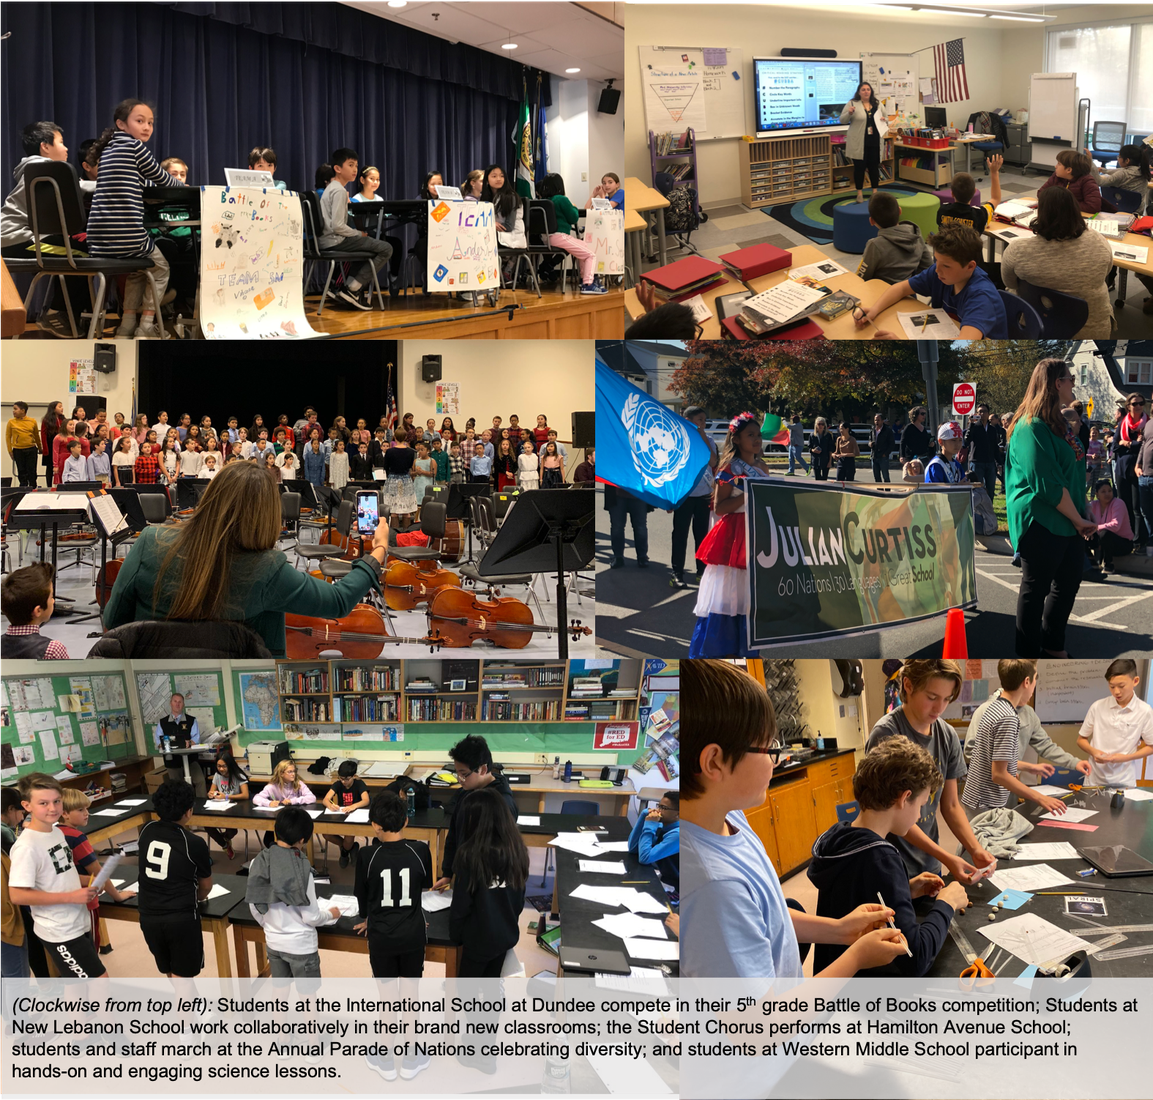 Collage of images from the various Magnet Schools around Greenwich highlighting students and staff at each school